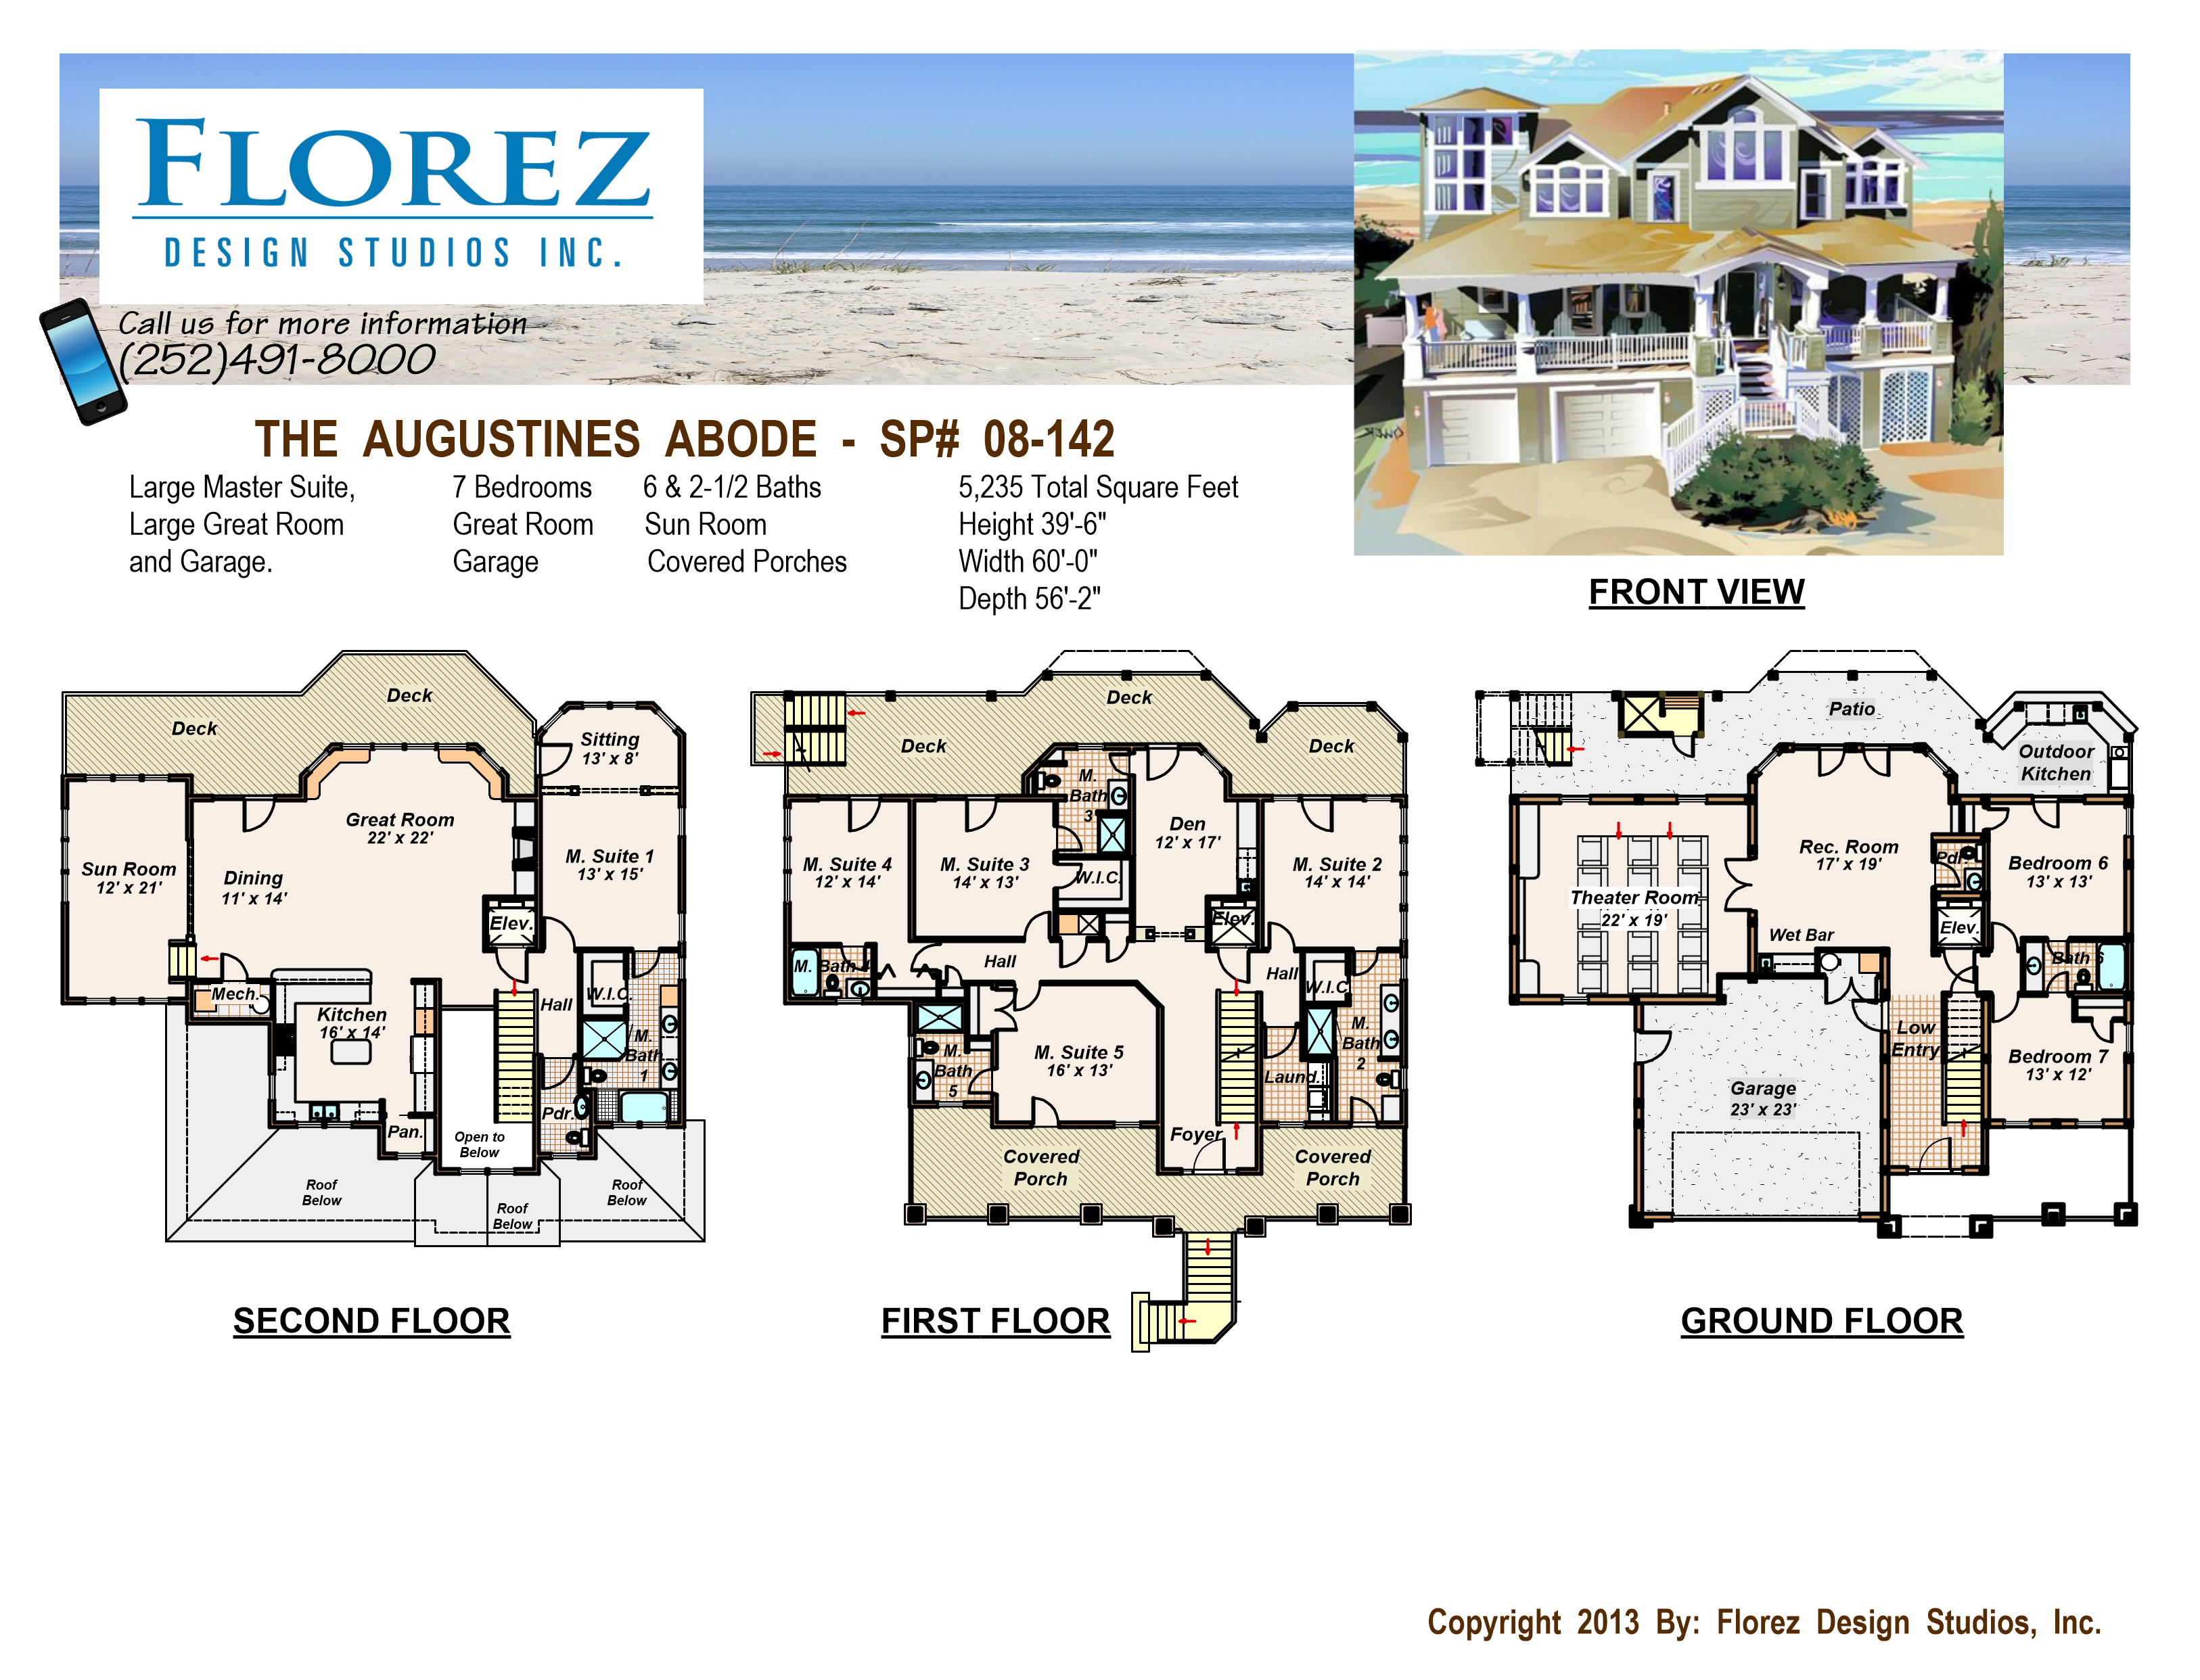 Inverted floor plans florez design studios for Inverted beach house plans